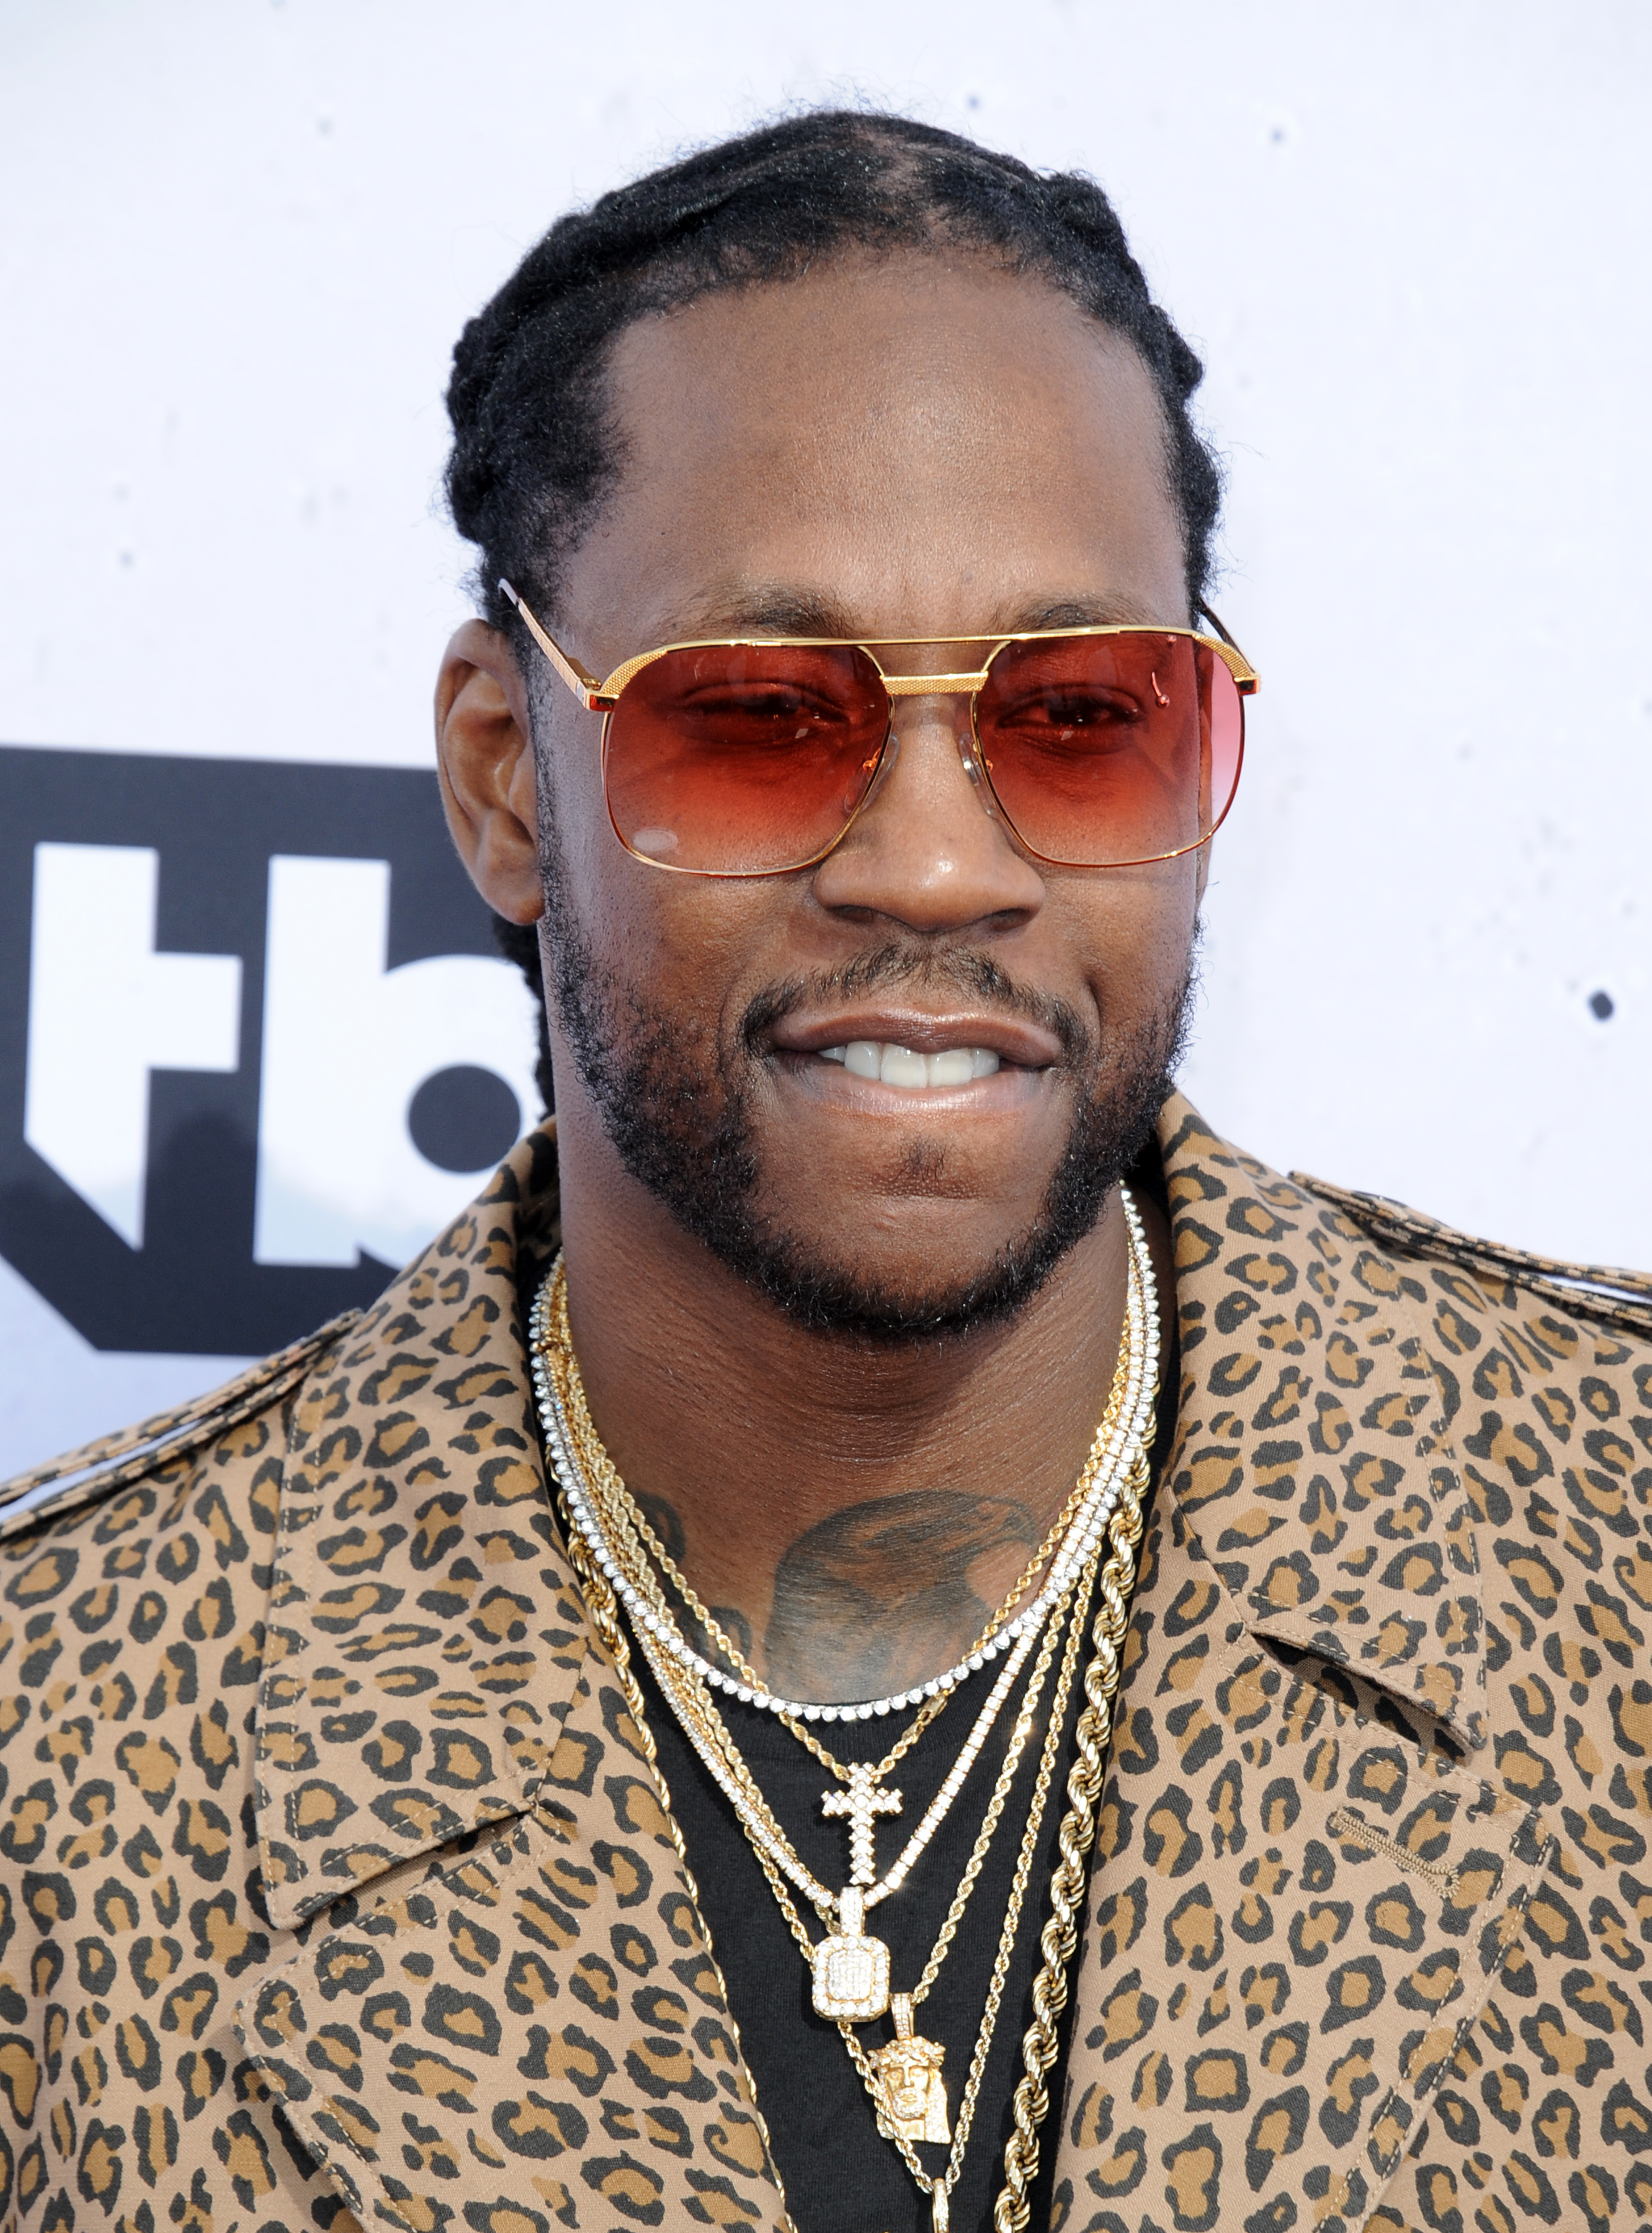 iHeartRadio Music Awards - Arrivals  Featuring: 2 Chainz Where: Inglewood, California, United States When: 03 Apr 2016 Credit: FayesVision/WENN.com